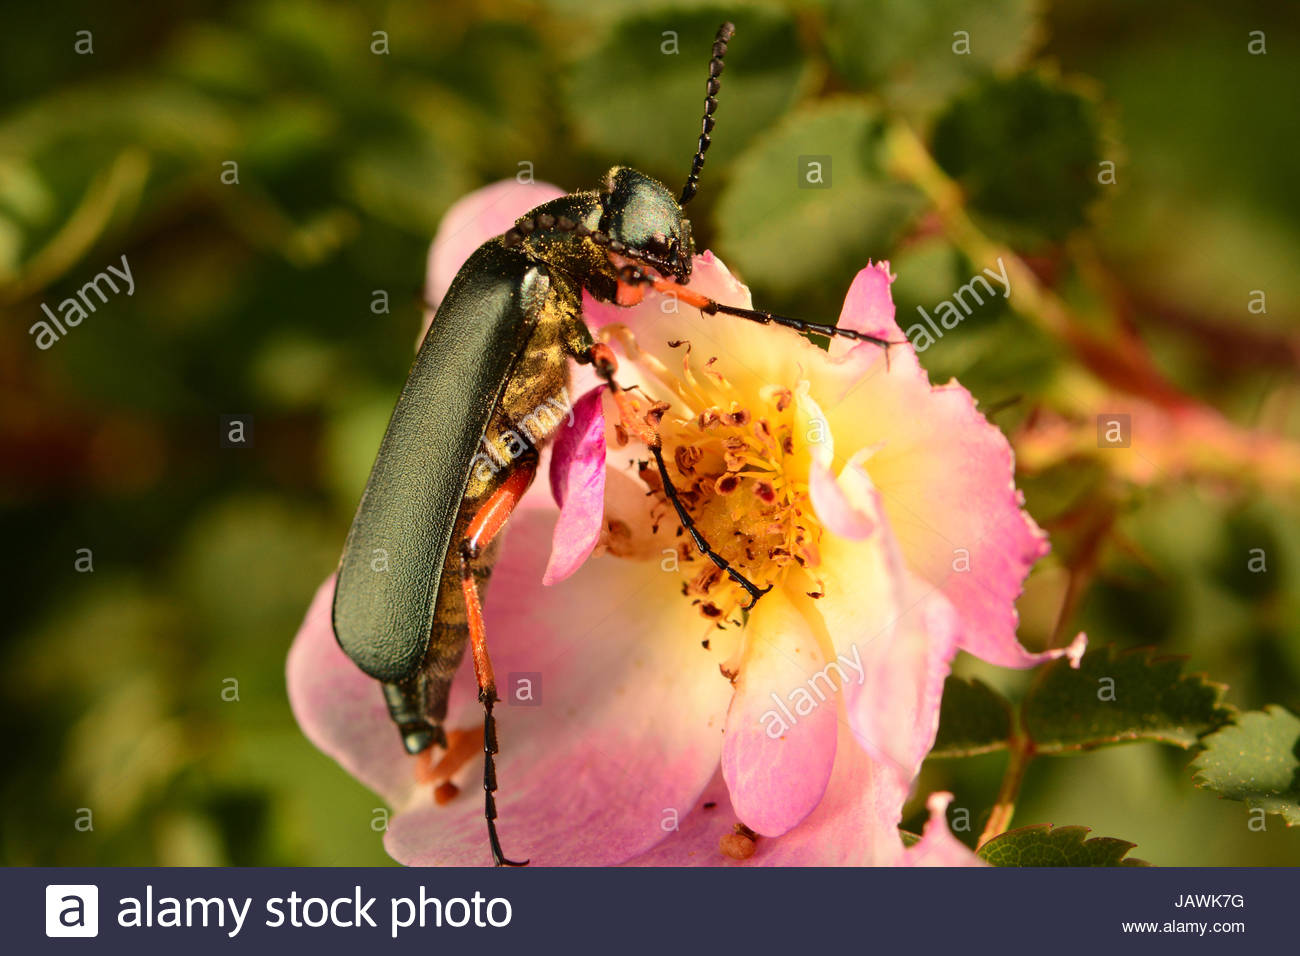 A longhorn beetle eating petals of a rose flower in Kouchibouguac National Park. - Stock Image